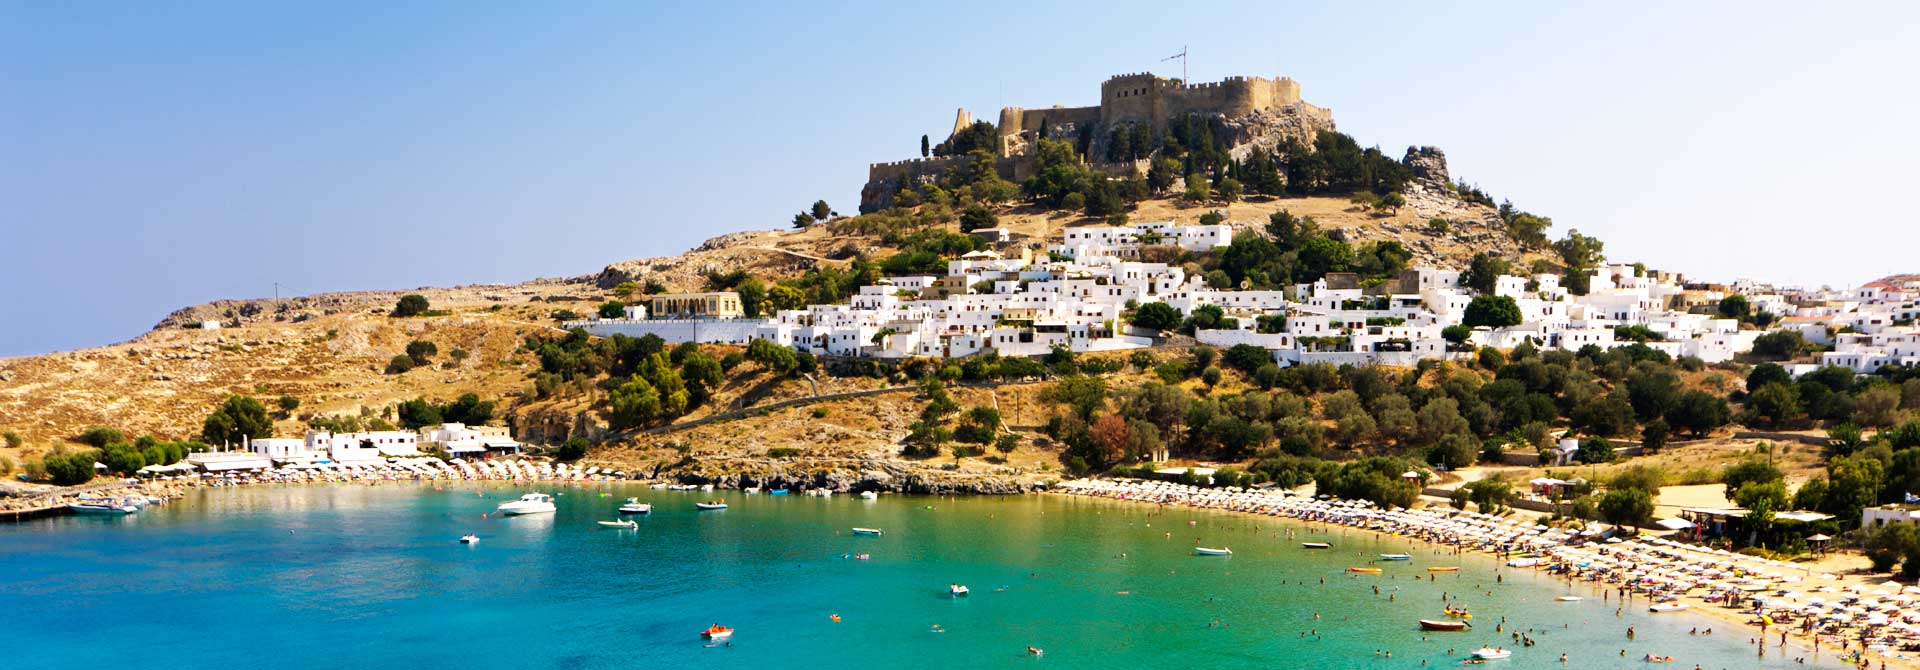 Dodecanese Islands, Greece - BoatGreece.com